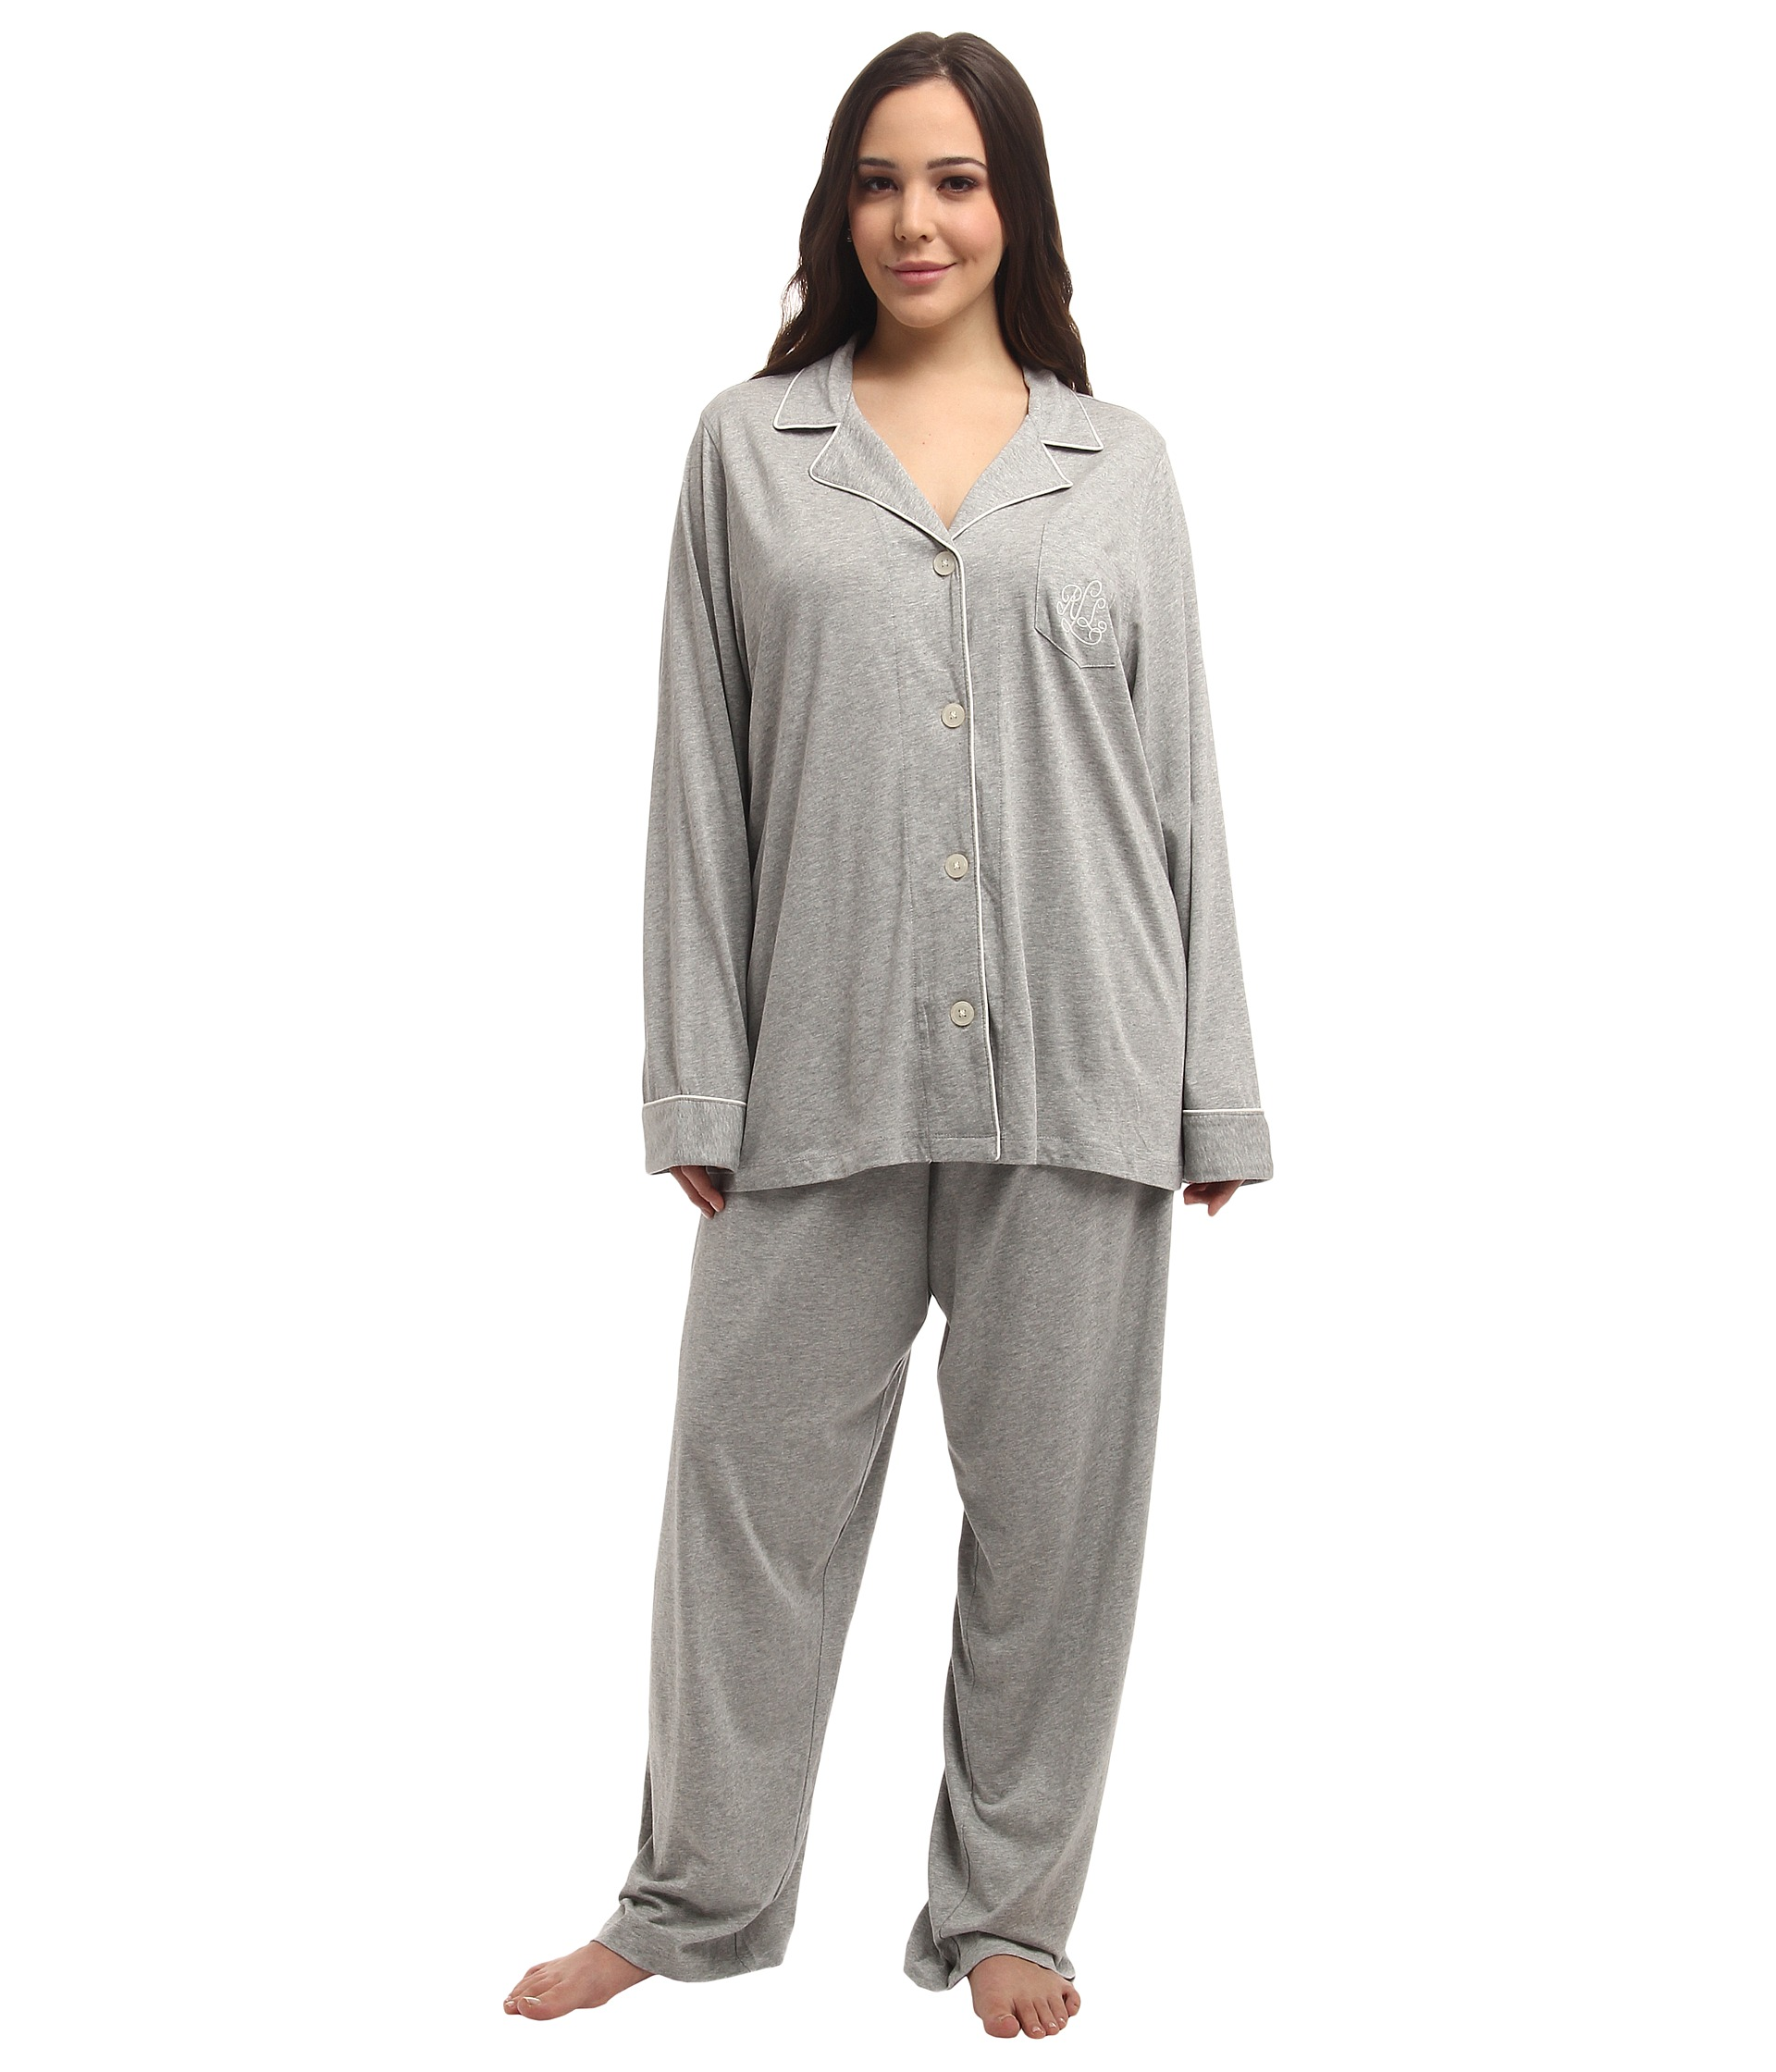 Discover sleepwear in plus sizes at Avenue. Basic styles always available online at optimizings.cf Free shipping available! Plus Size Women's Sleepwear. Sort by. Featured Sort by Featured Price Low To High Price High To Low Most Popular Filter. New 3-Piece Verbiage Sleep Set $ 30% Off Quick View. New 3-Piece Clock Sleep Set $